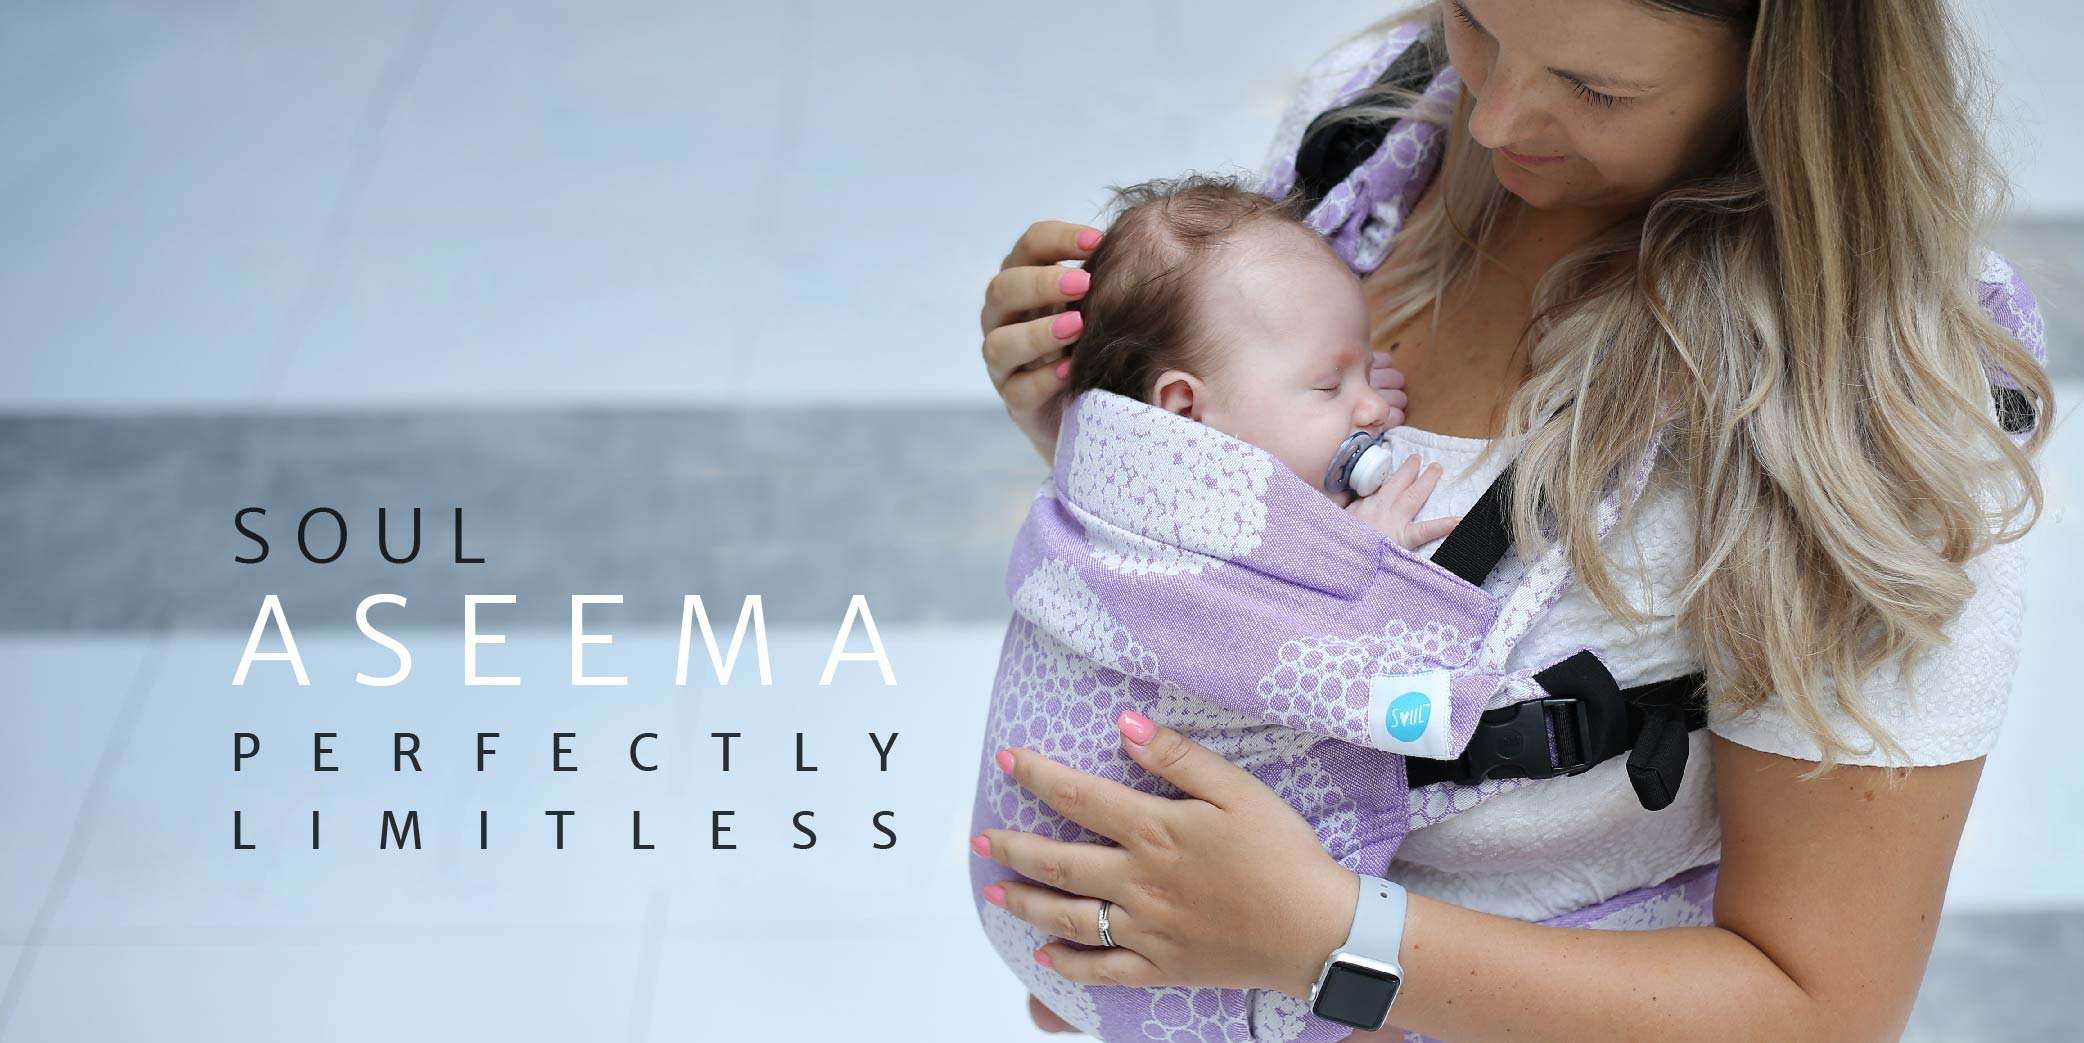 Soul AseemA - Newborn to Toddler Baby Carrier